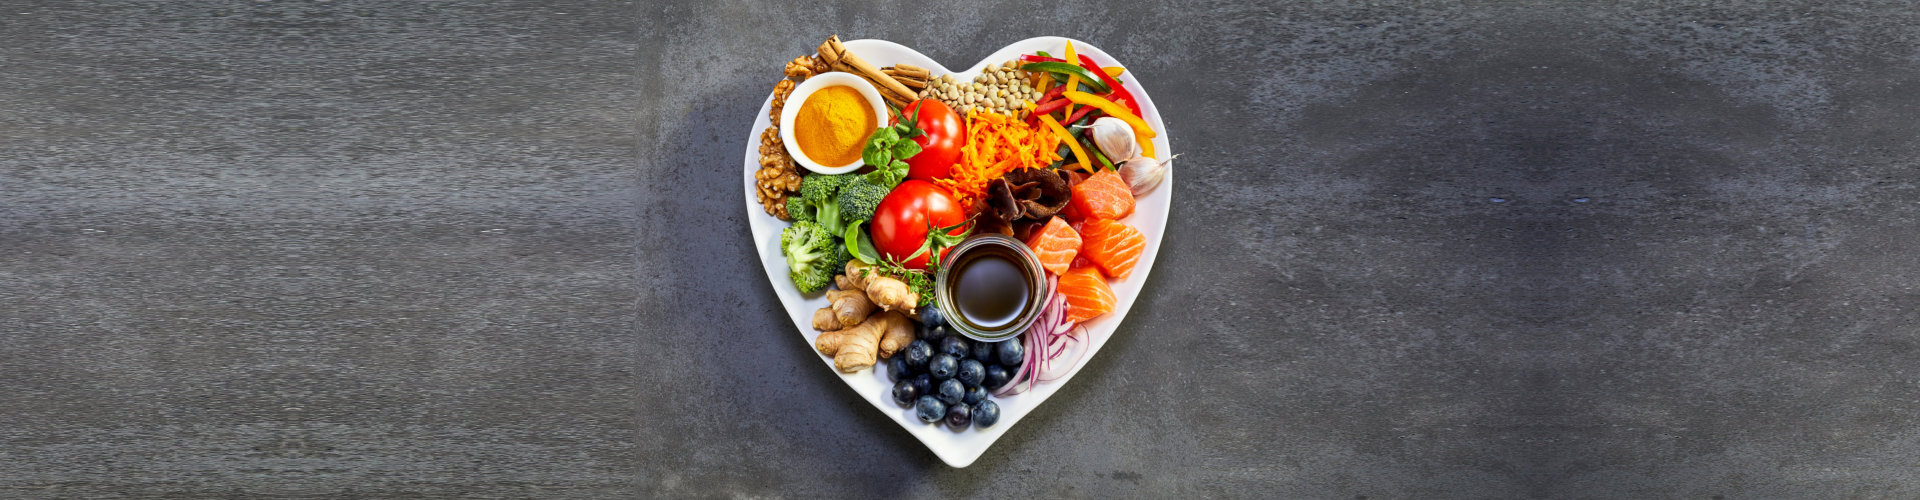 healthy diet for the cardiovascular system with a heart-shaped plate